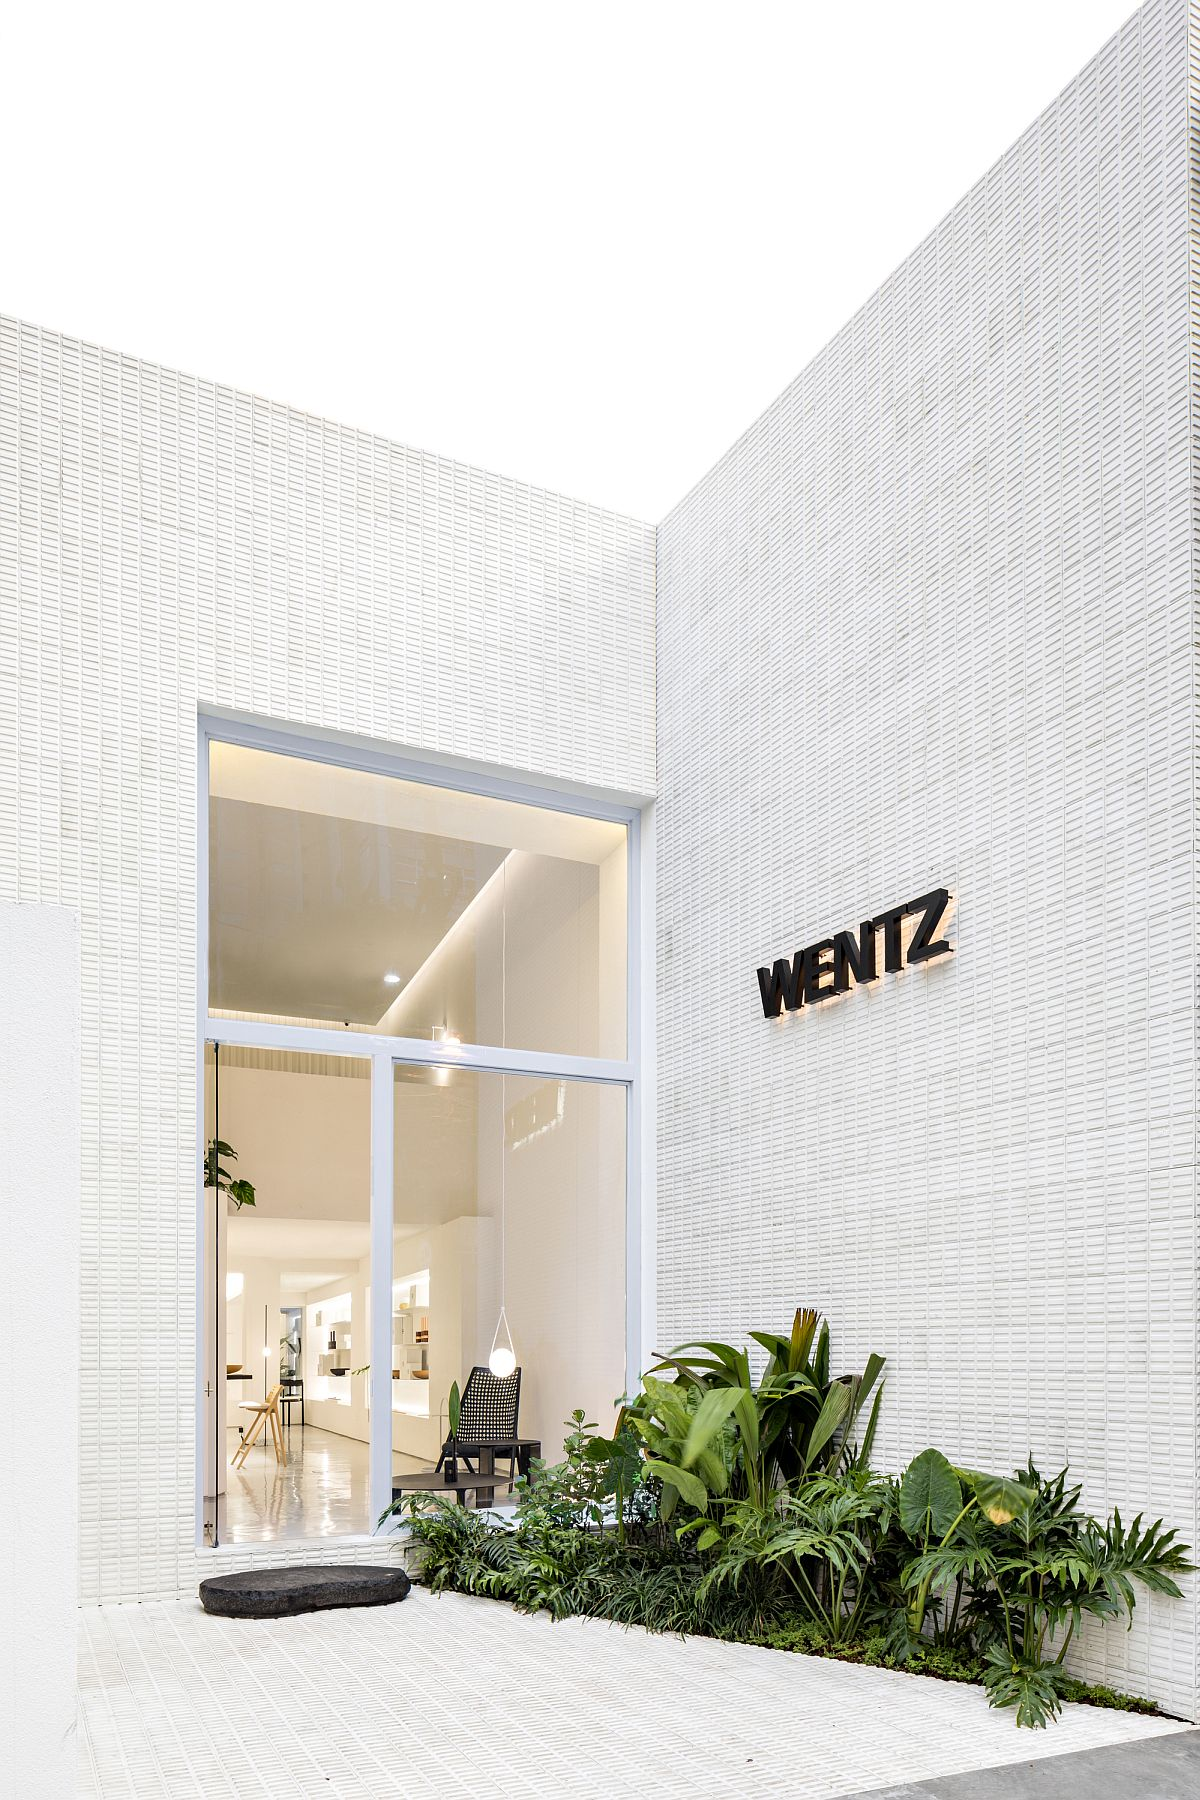 Polished Renovation Turns Two-Story Building in Sao Paulo into a Concept Store